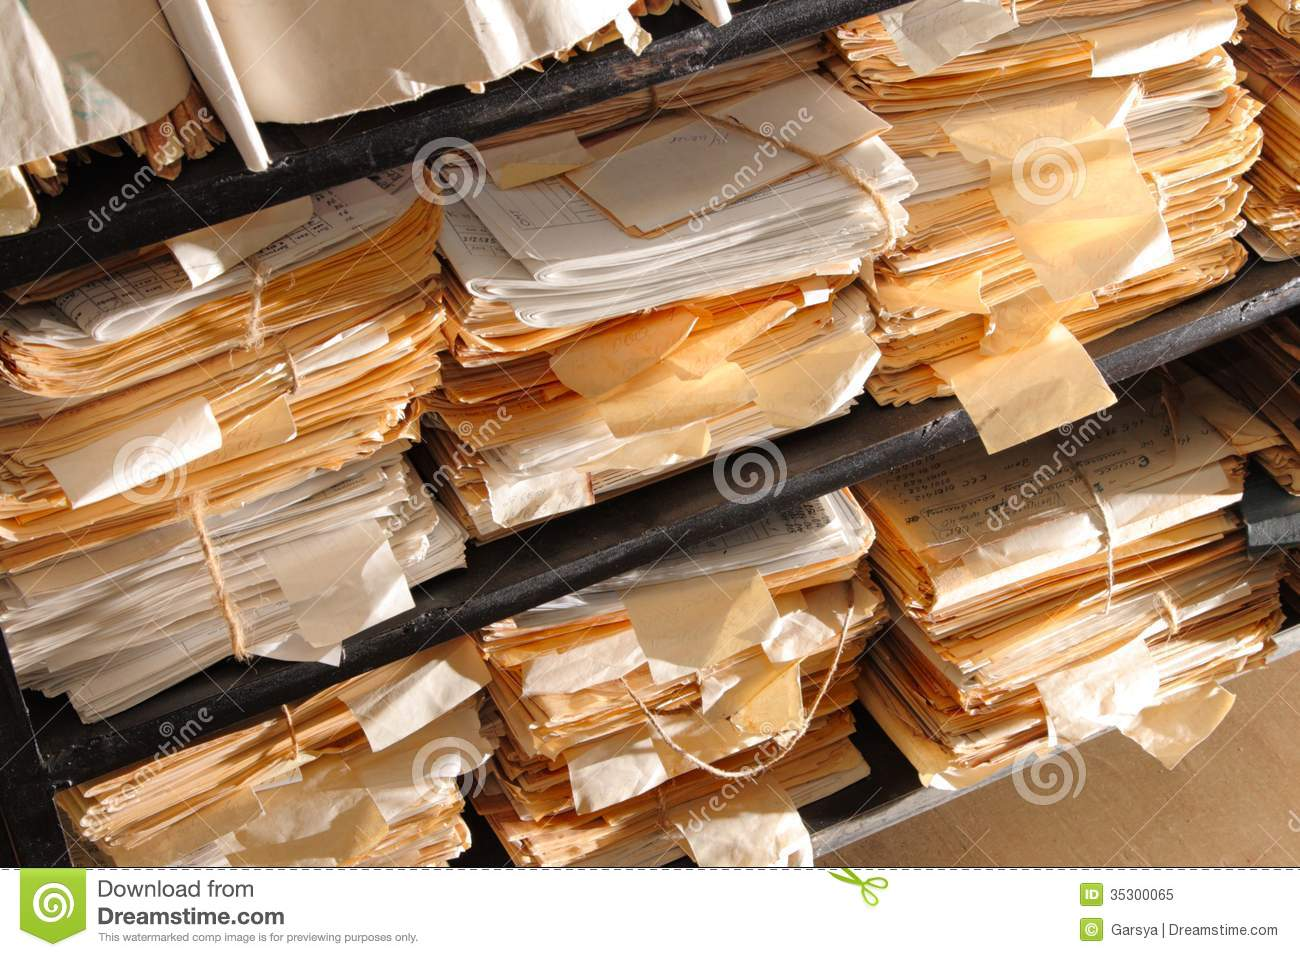 Paper Archive Of Documents Stock Image - Image: 13060991